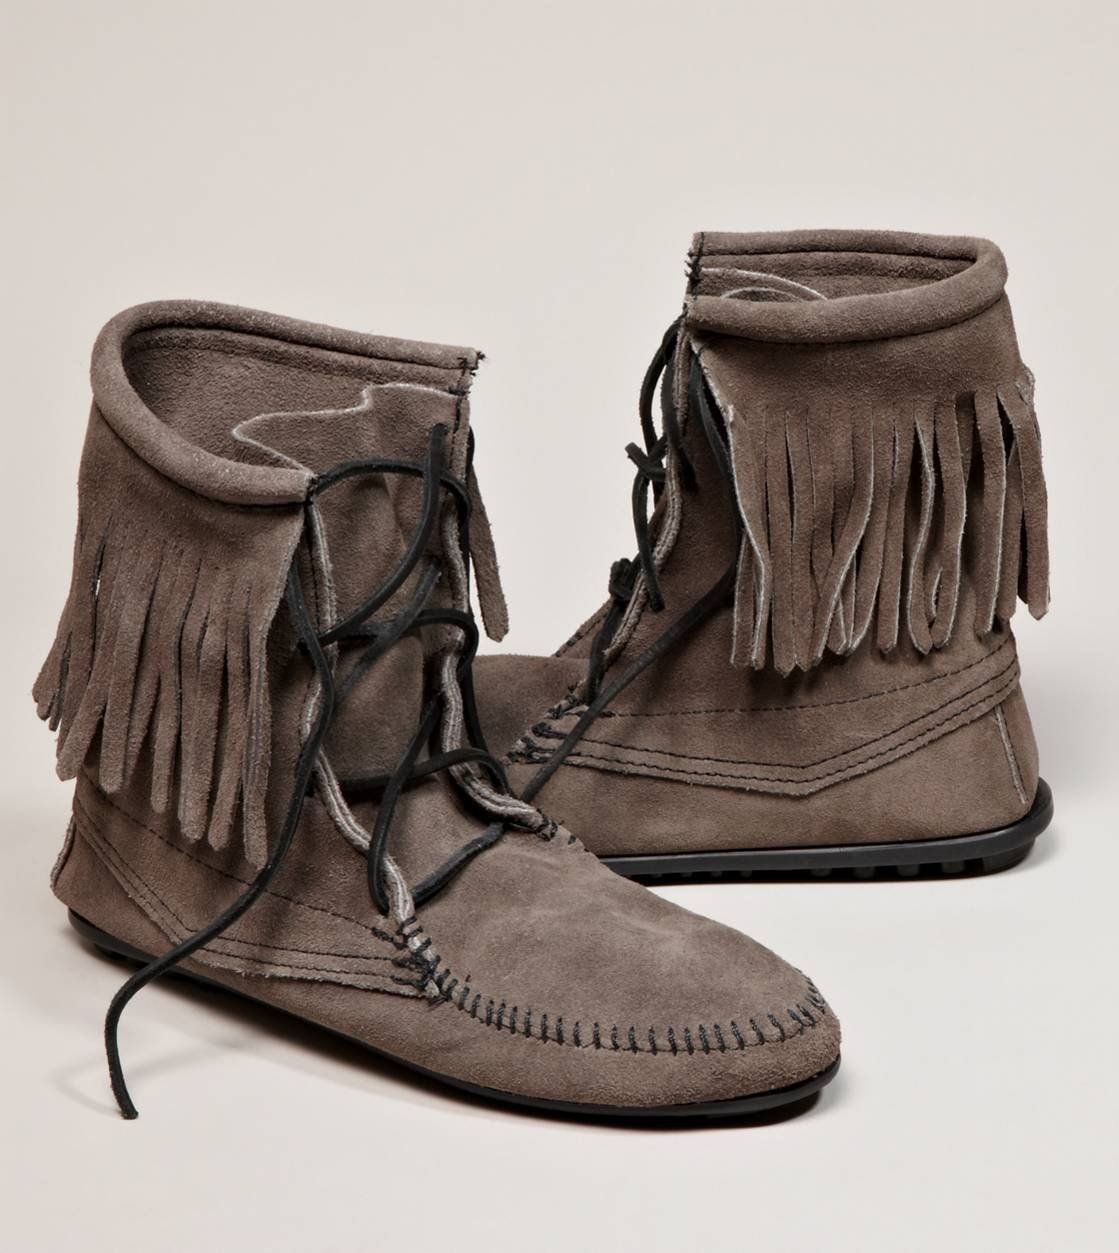 Minnetonka Tramper Ankle Hi Boot American Eagle Outfitters Moccasin Ankle Boots Boots Moccasin Boots